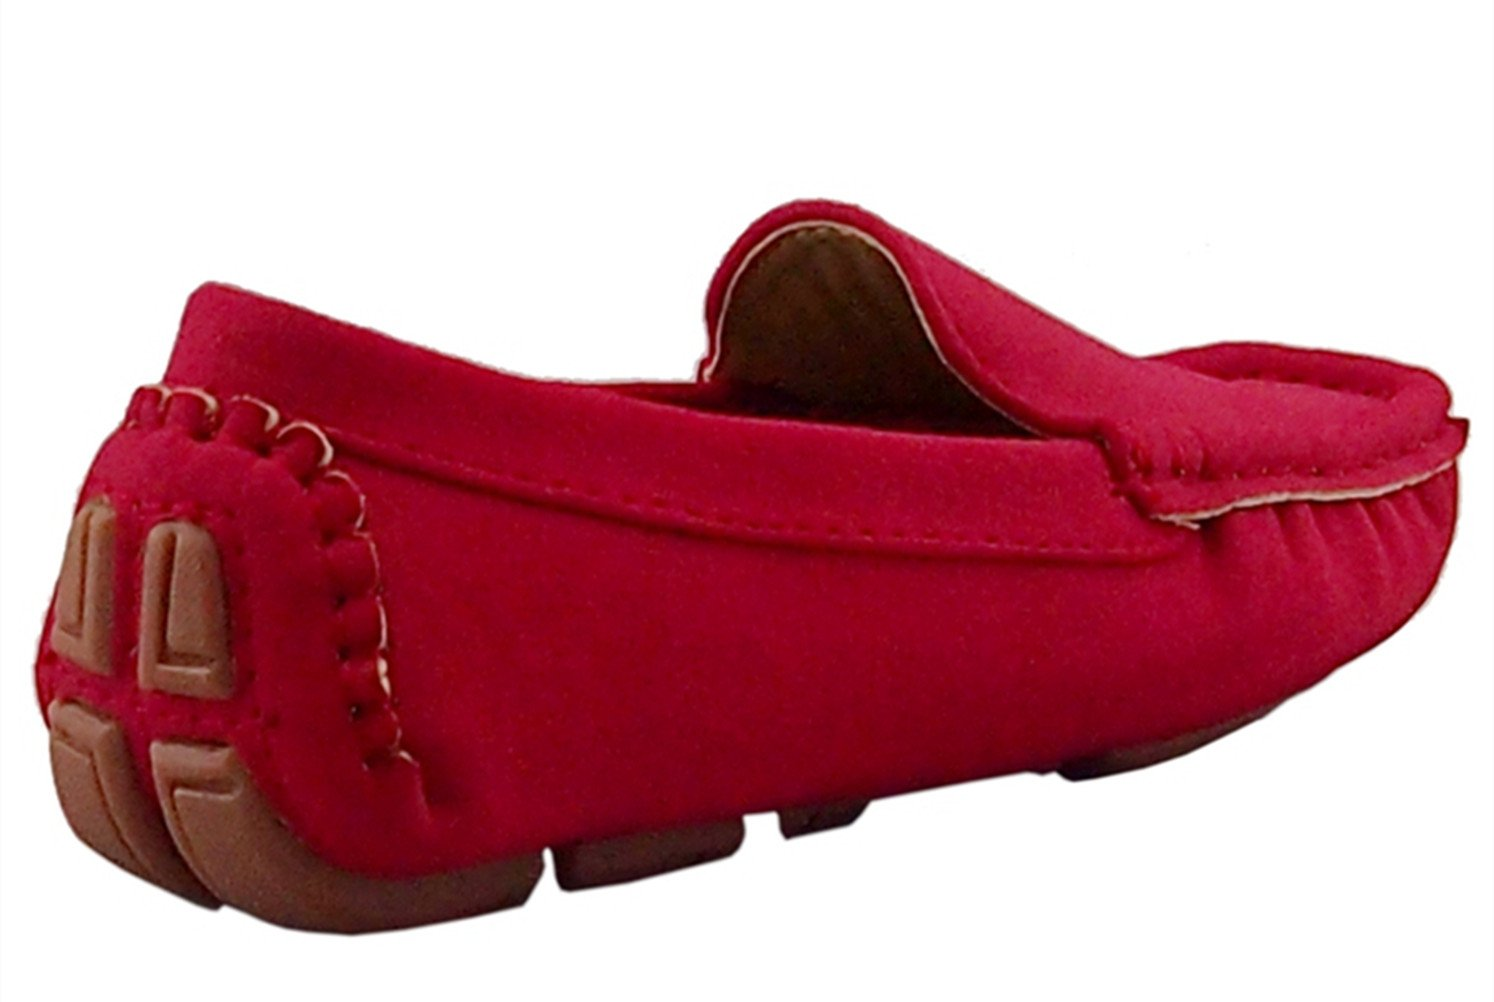 DADAWEN Girl's Boy's Suede Slip-on Loafers Oxford Shoes Red US Size 6.5 M Toddler by DADAWEN (Image #6)